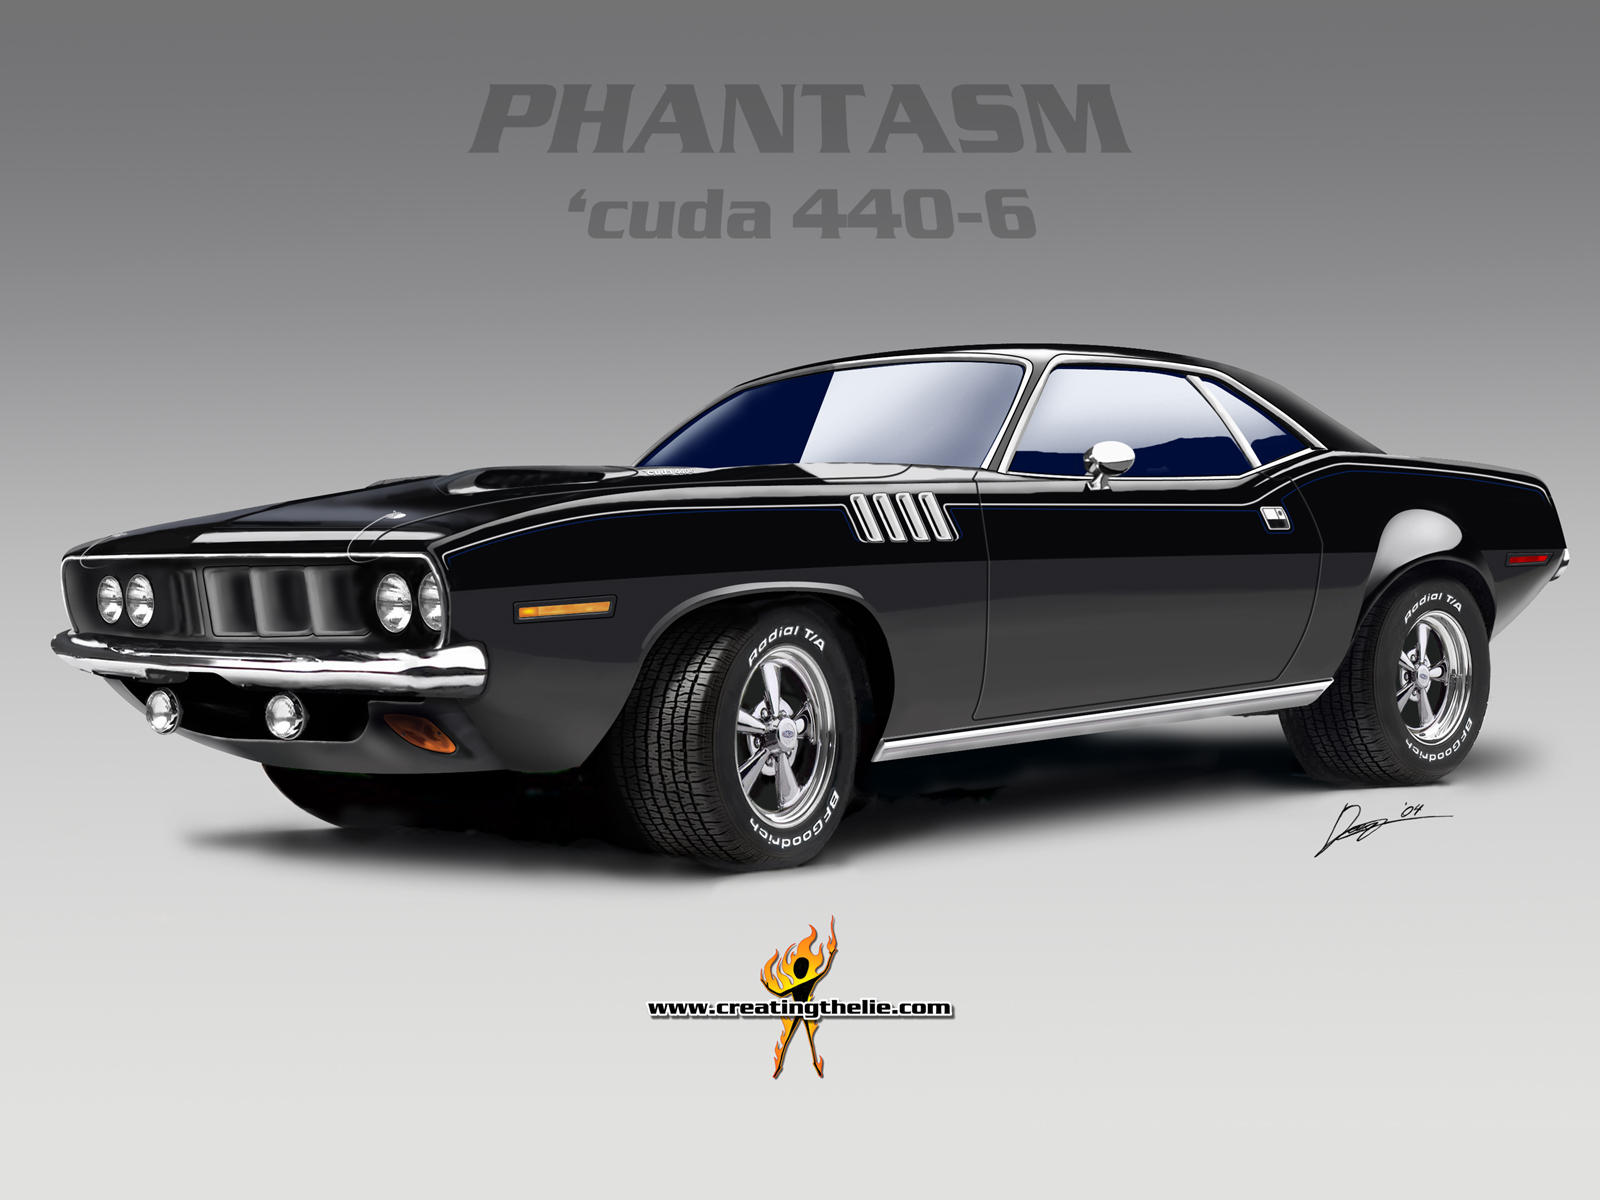 Phantasm Cuda by burningman